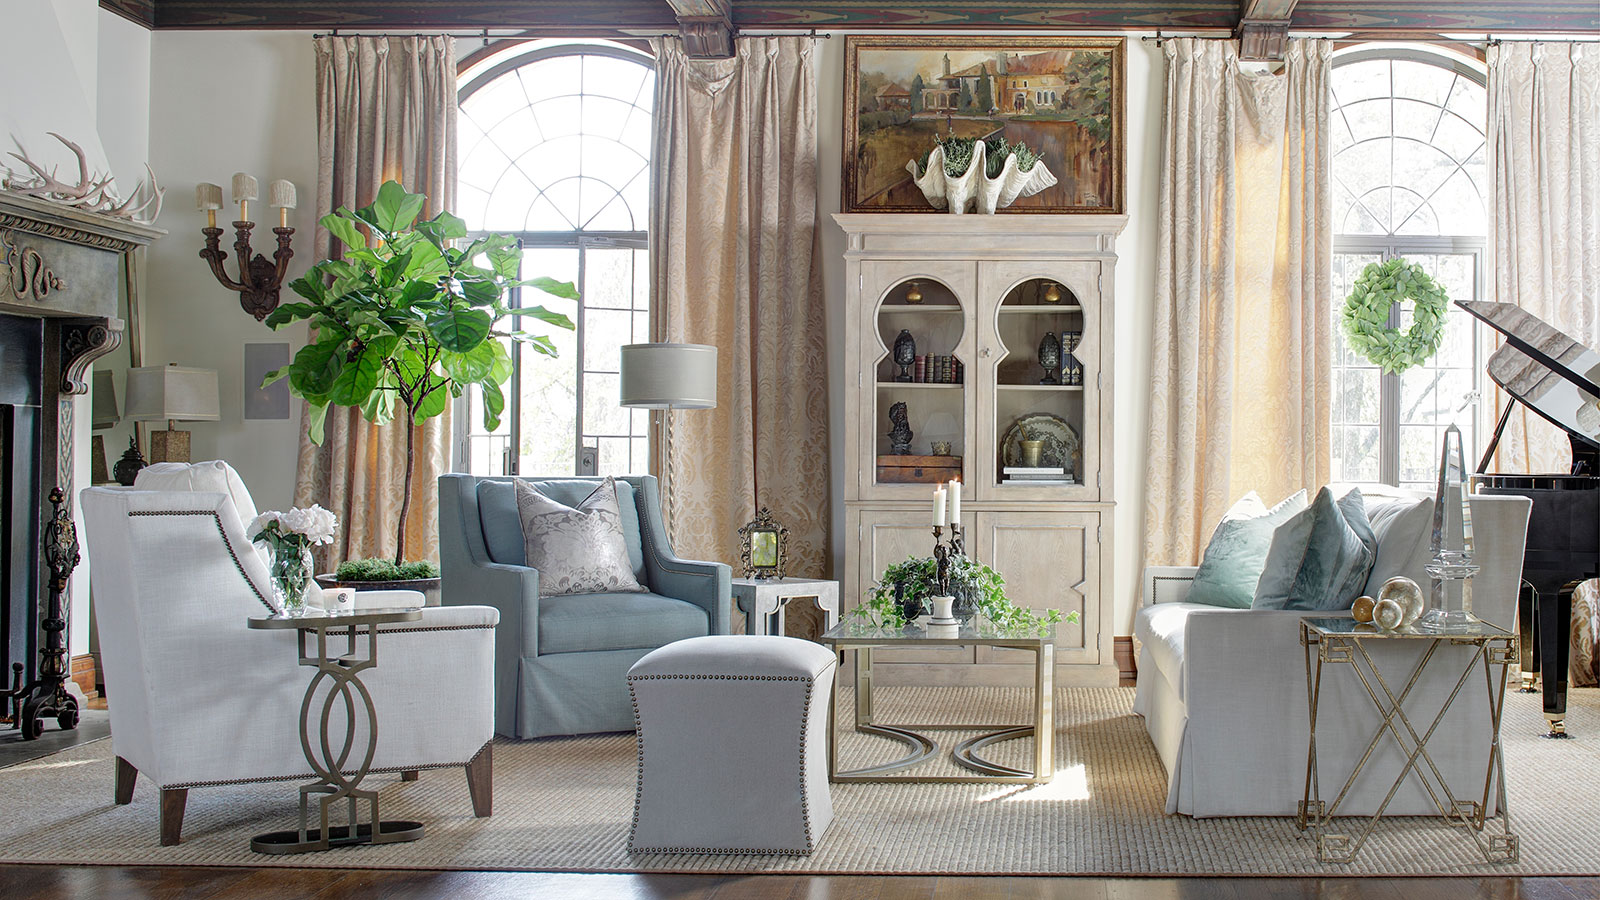 Reflections on transitional furniture style gabby for Home decor styles